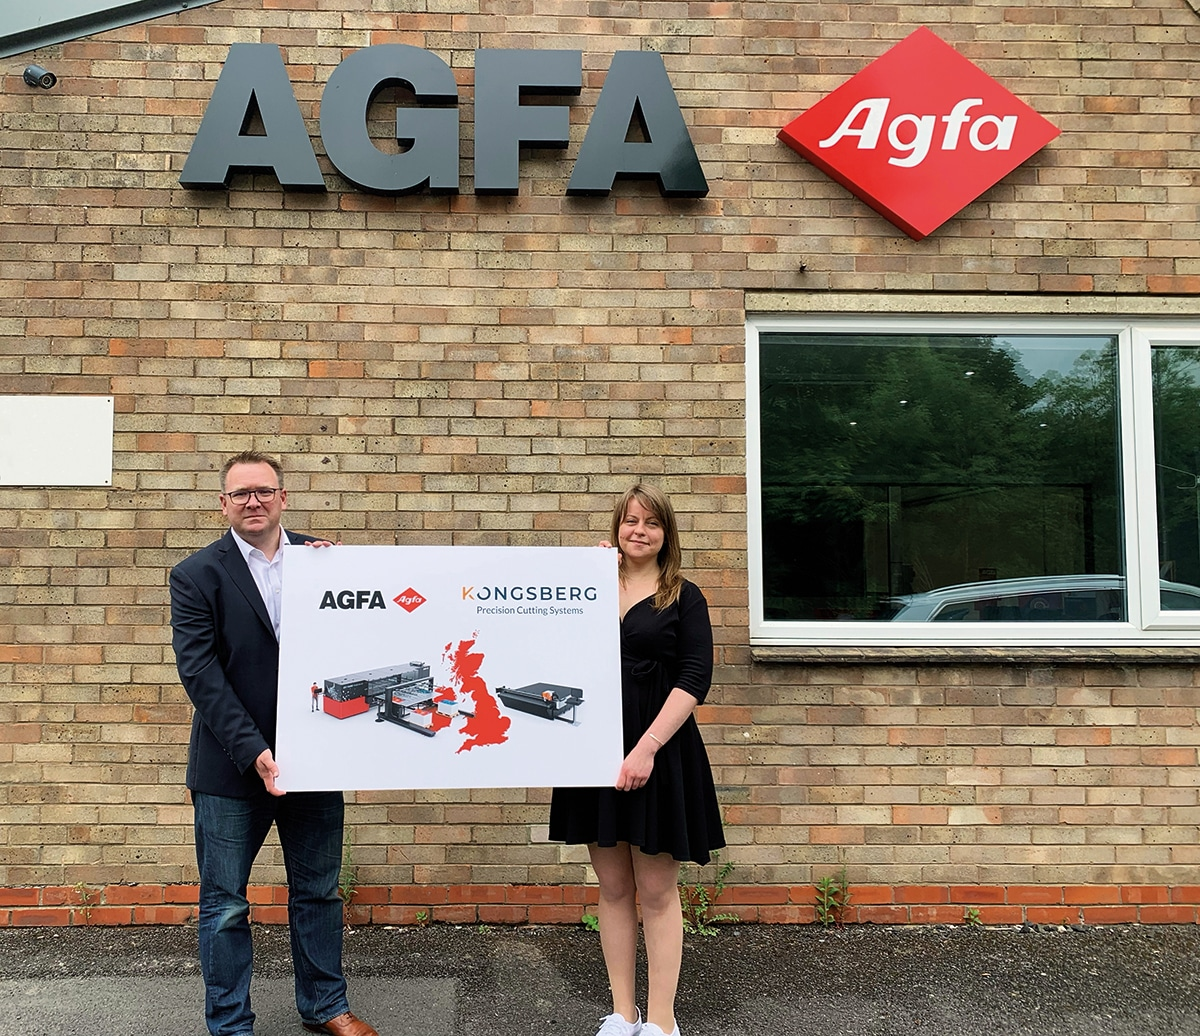 Bobby Grauf of Agfa and Melanie Fox of Kongsberg PCS (L to R) at Agfa's new Inkjet Competence Centre in Rugby, Warwickshire